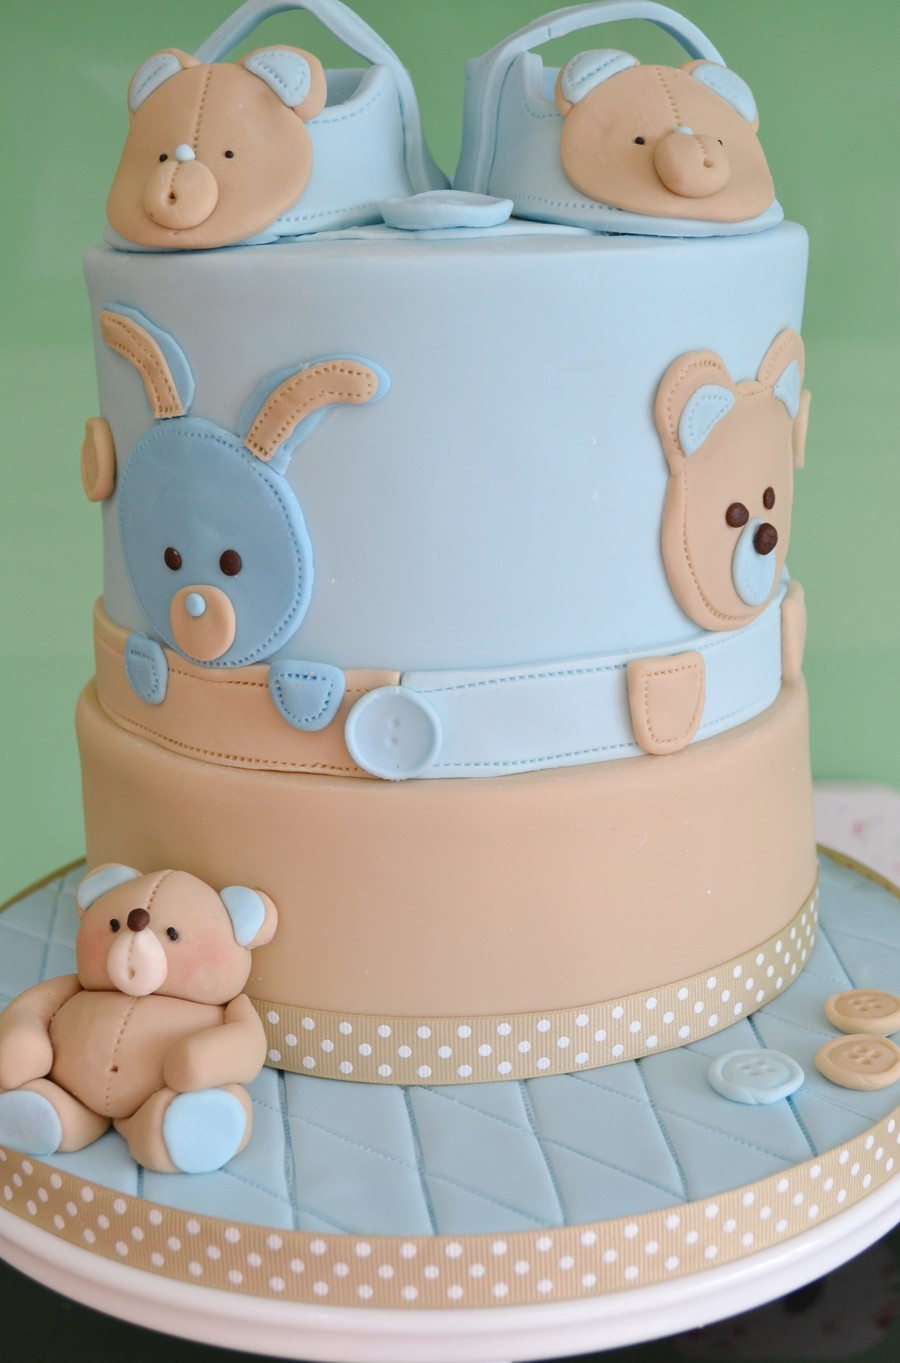 Christening Cake Designs For Baby Boy : Baby Boy Christening Cake With Matching Cupcakes Inspired ...